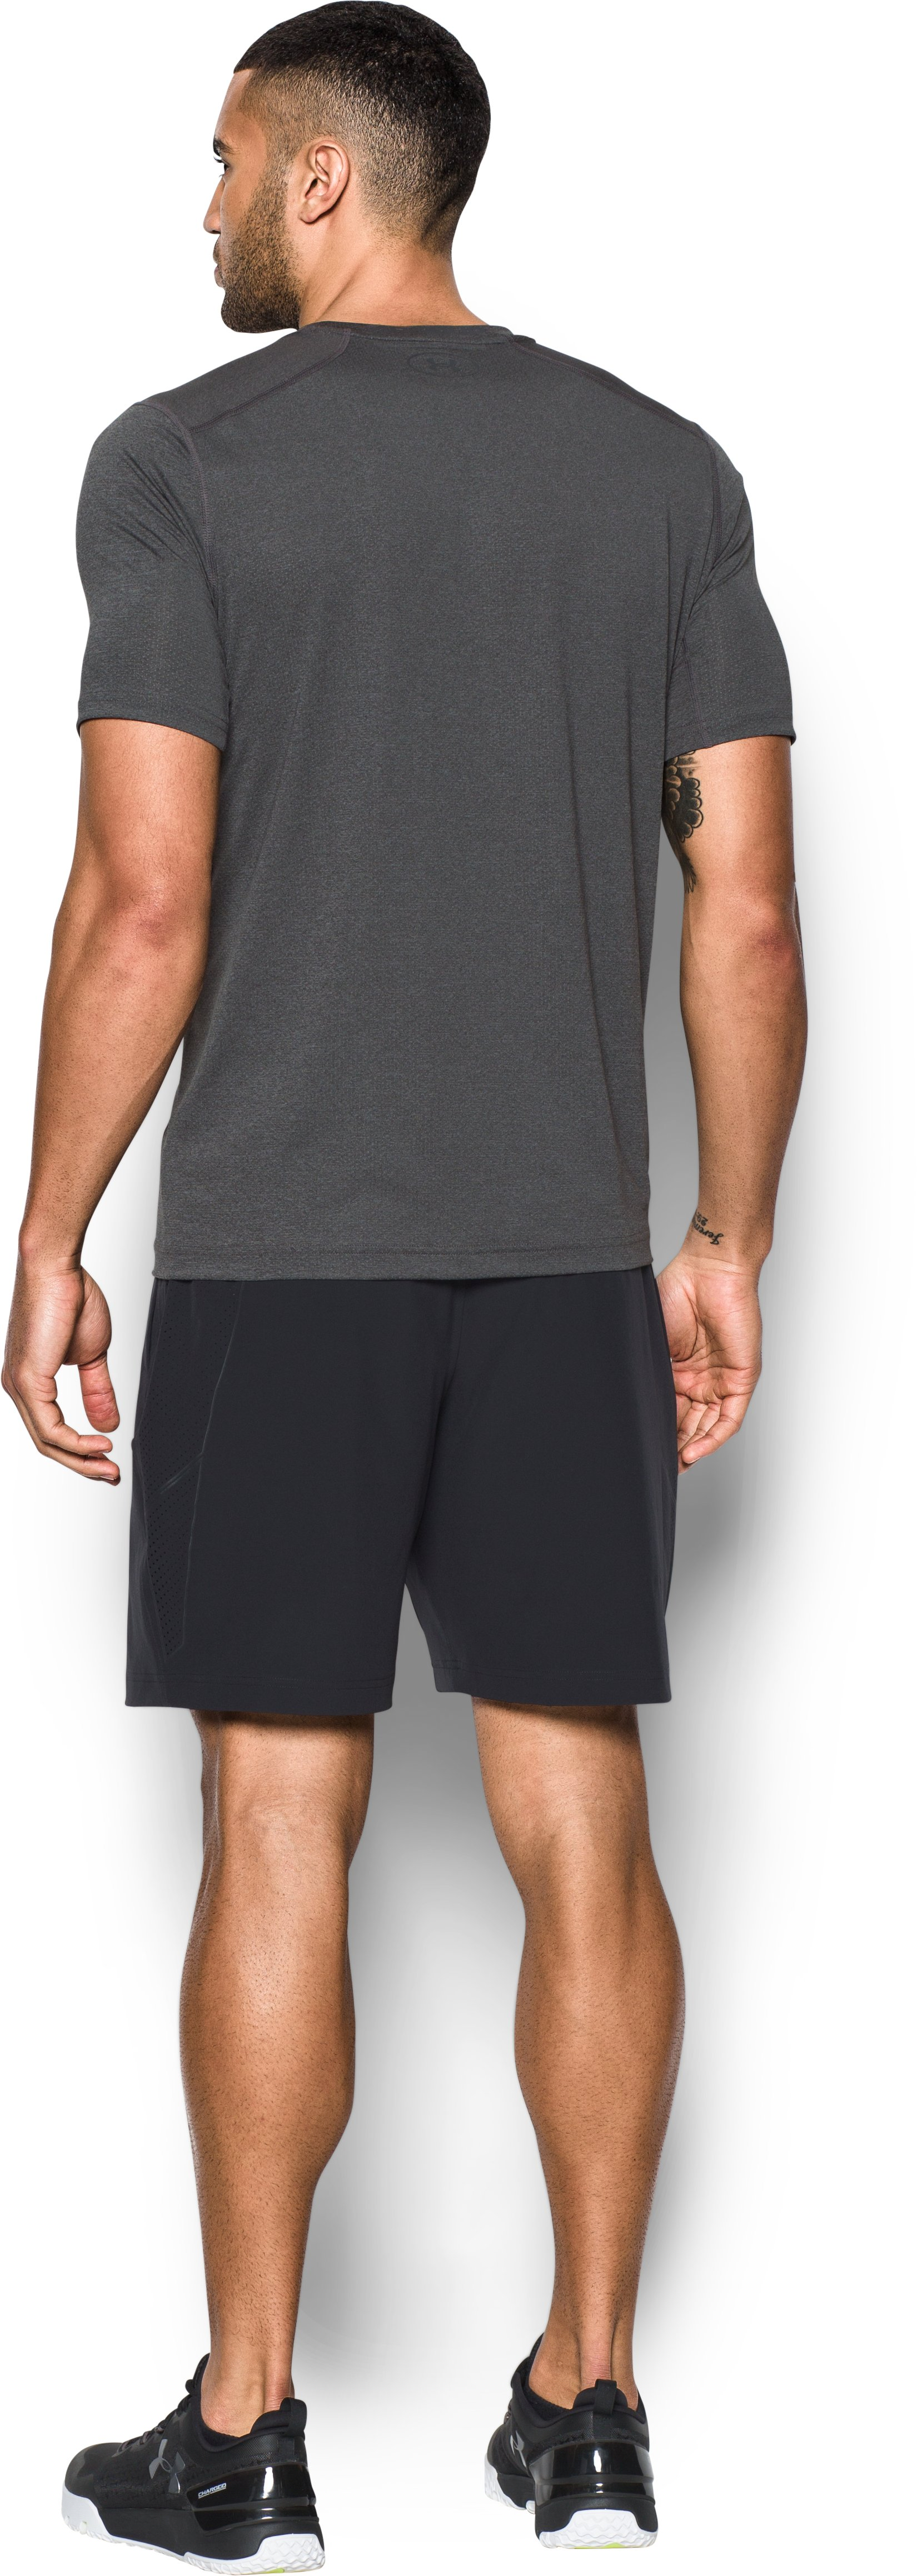 Men's HeatGear® CoolSwitch Twist Fitted Short Sleeve, Carbon Heather, Back